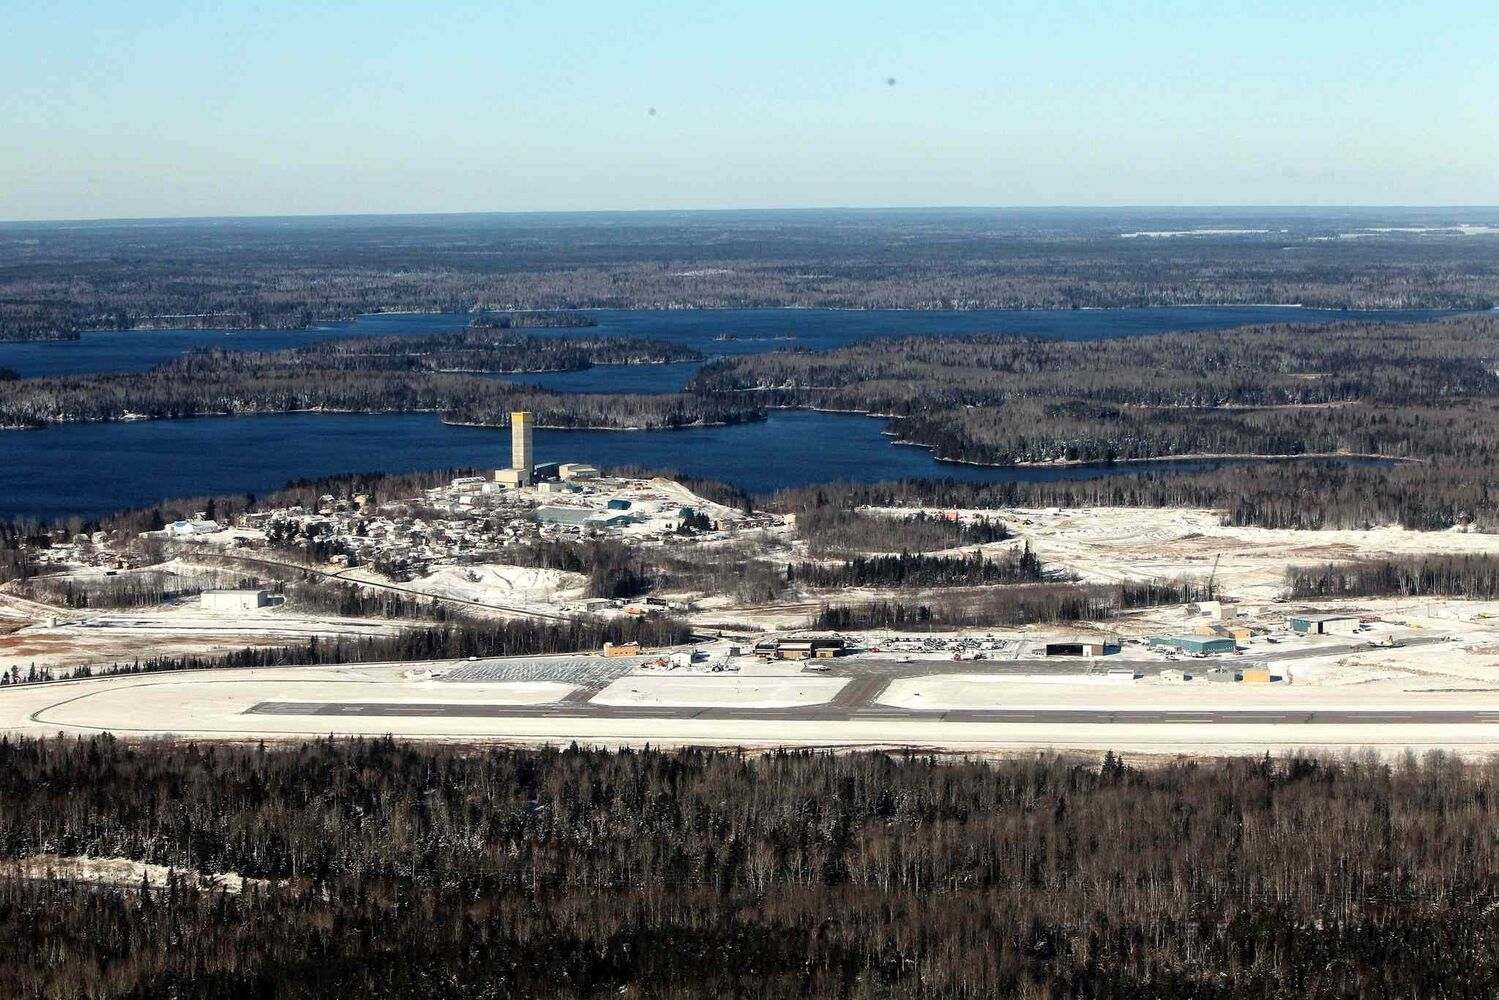 The airport at Red Lake, Ontario where a Bearskin Airline plane crashed just before landing killing five while two others survived. (Mike Deal / Winnipeg Free Press)